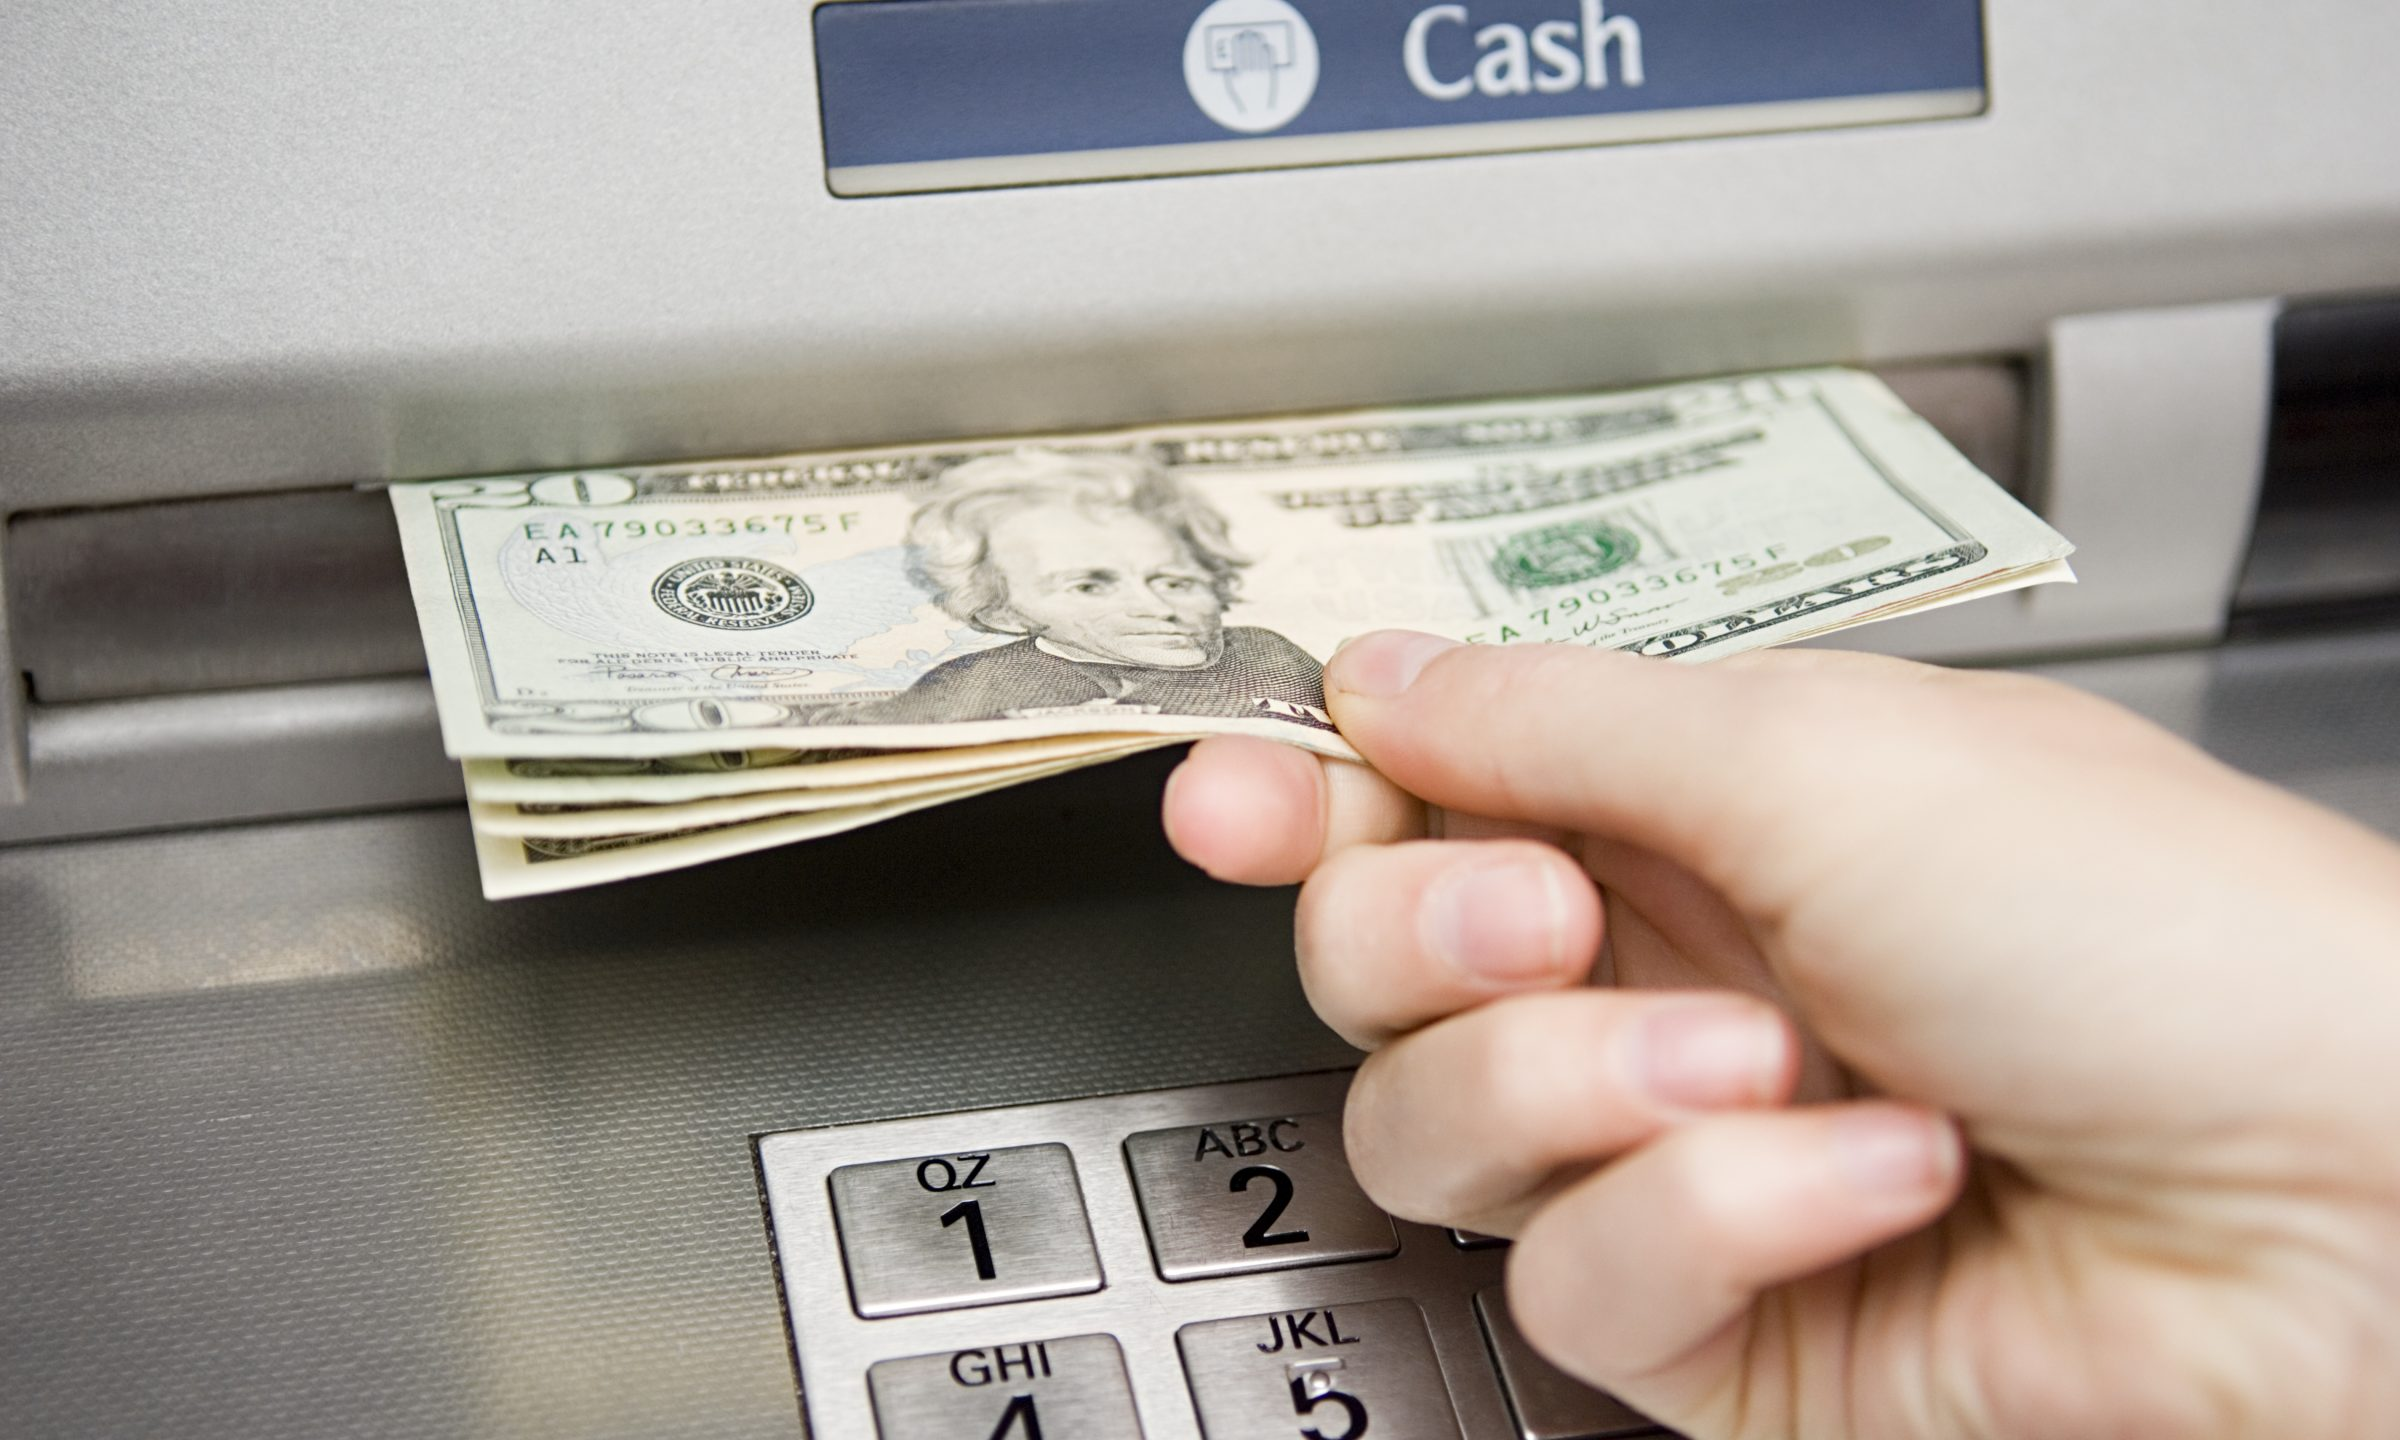 How To Cash A Check Step By Step Nerdwallet